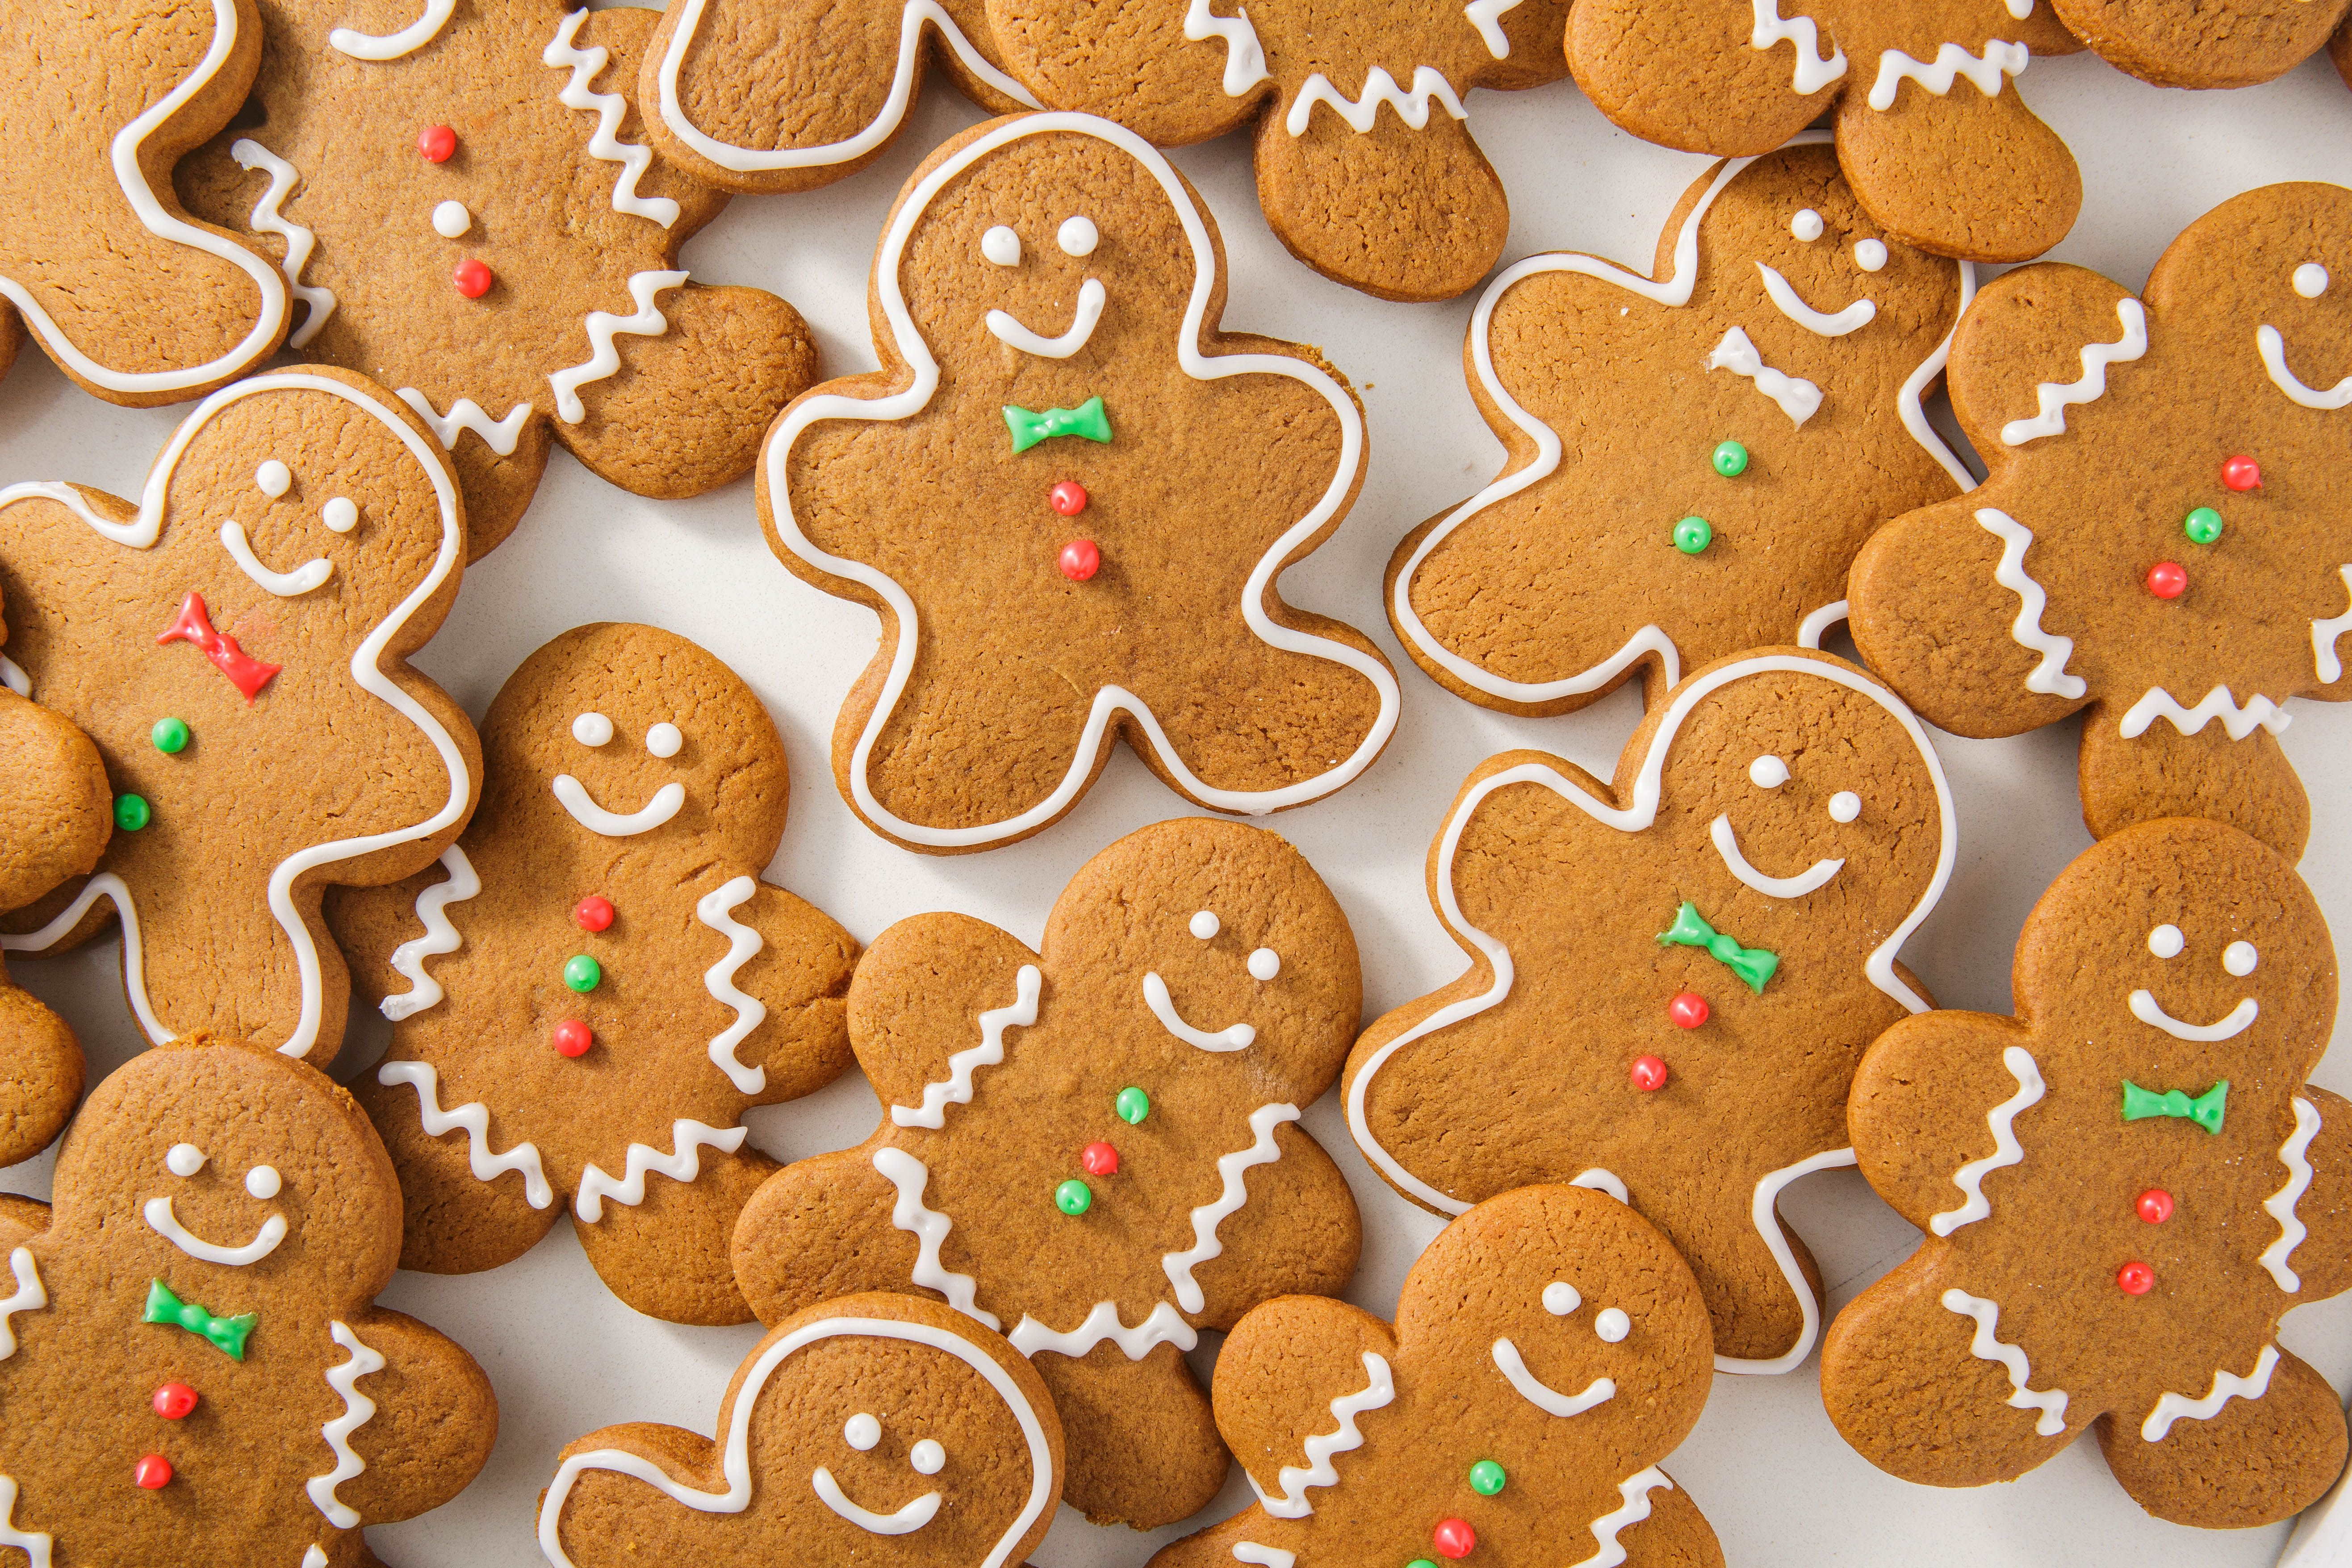 Whether or not you actually like gingerbread cookies is